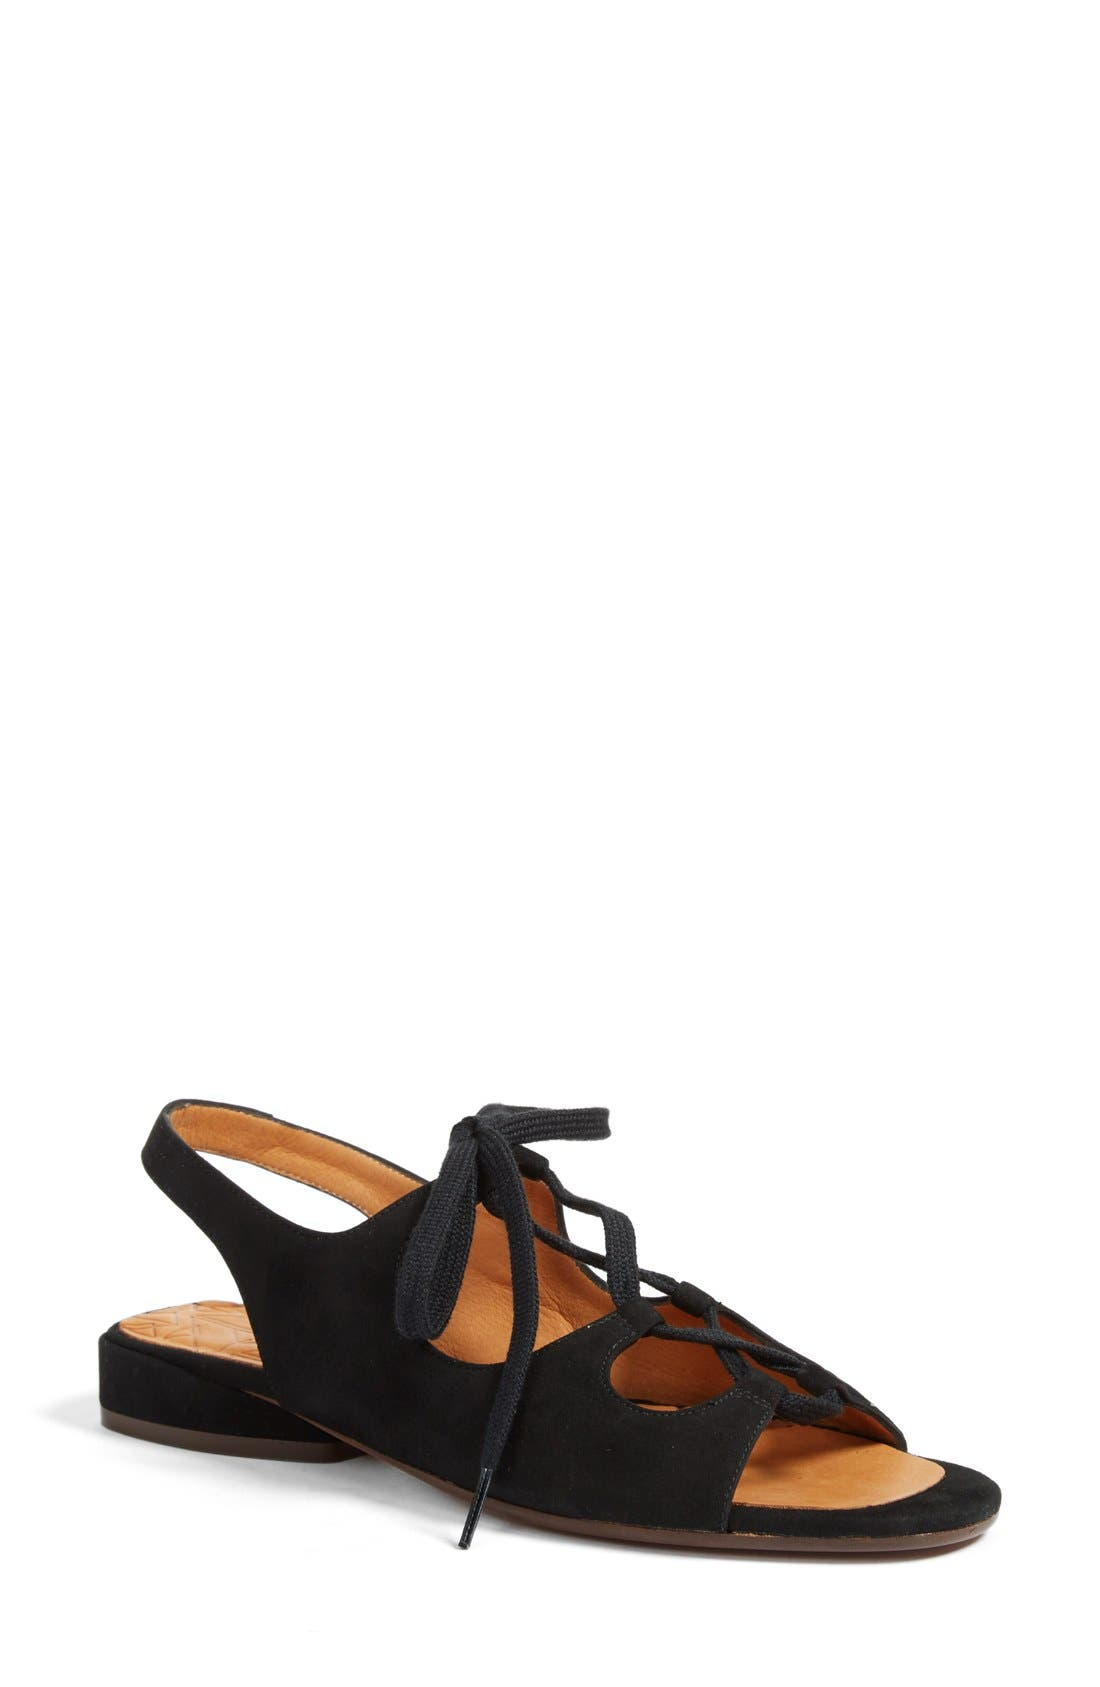 Alternate Image 1 Selected - Chie Mihara Nalia Lace-Up Sandal (Women)